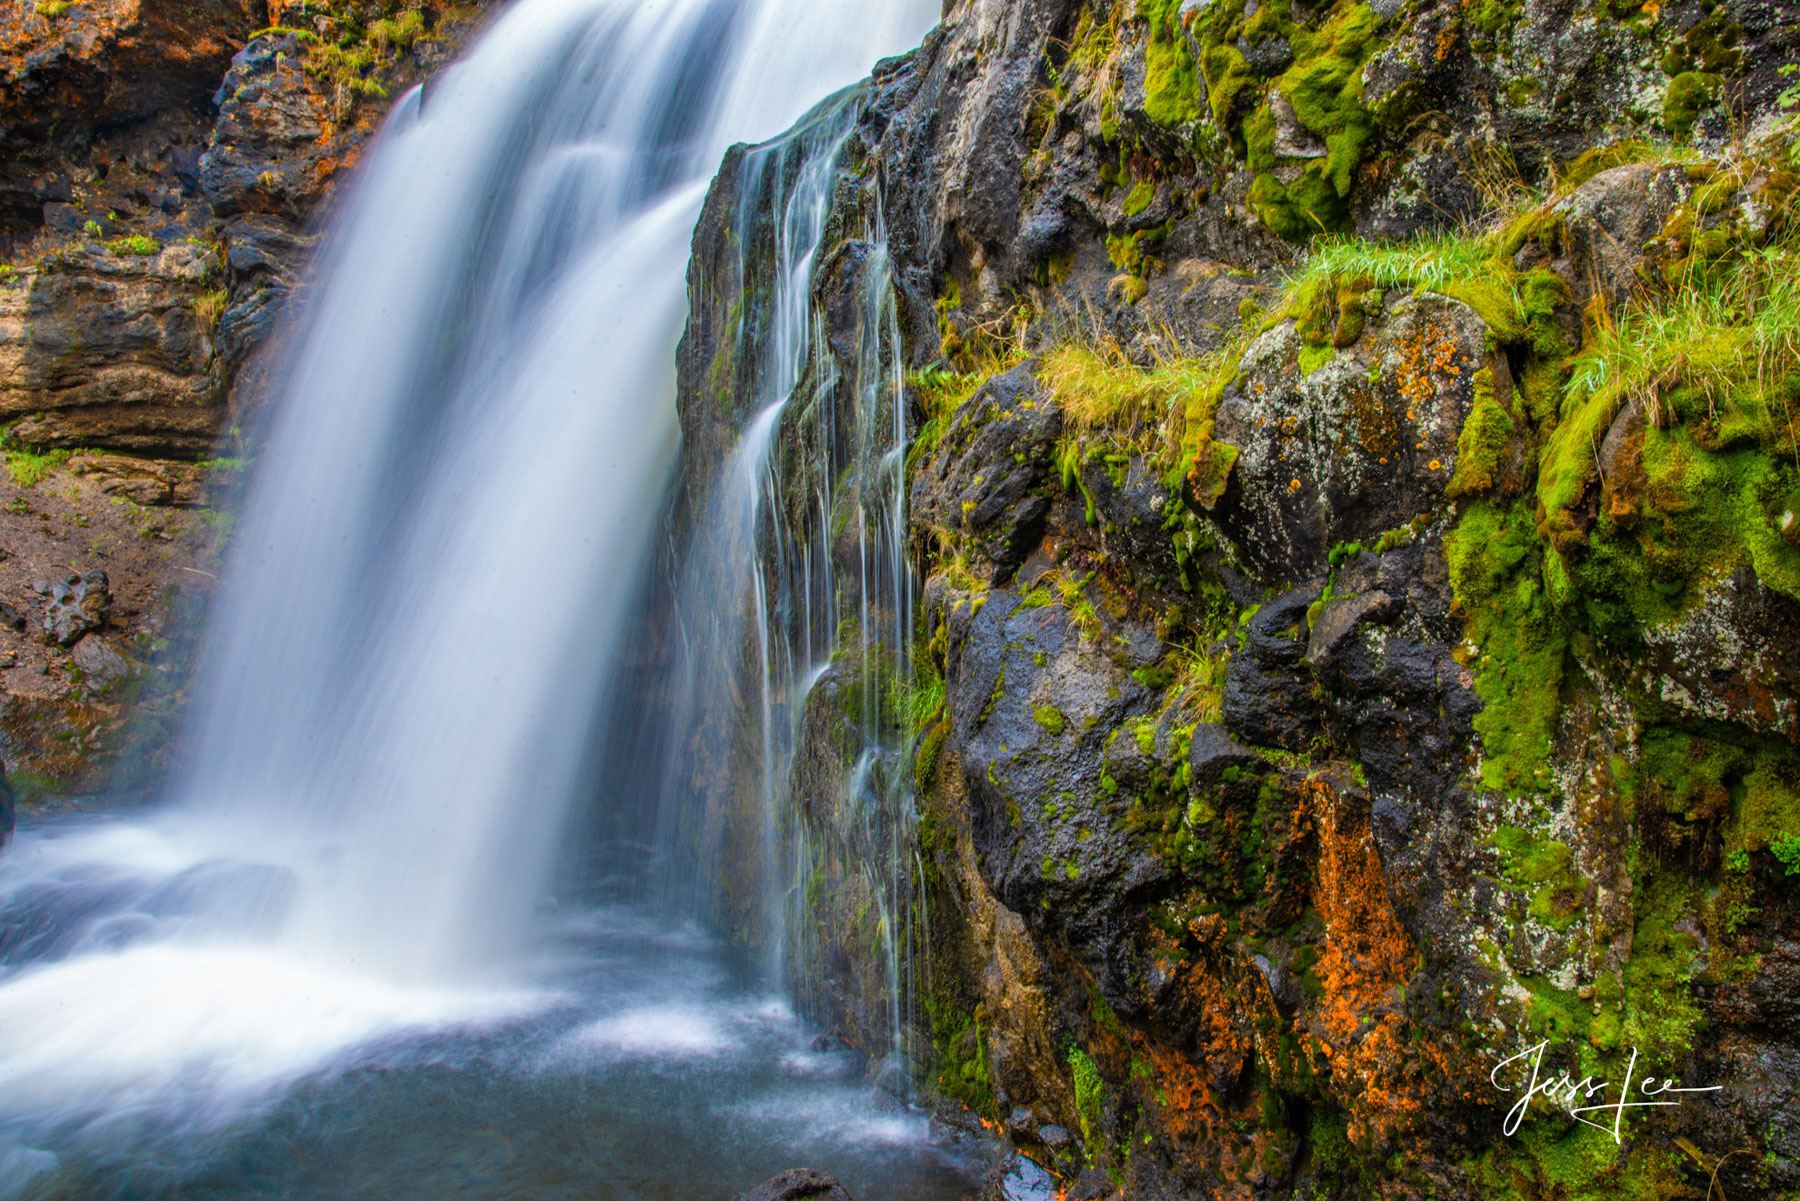 Limited Edition of 50 Exclusive high-resolution Museum Quality Fine Art Prints of this mossy falls in a place sacred to Native...